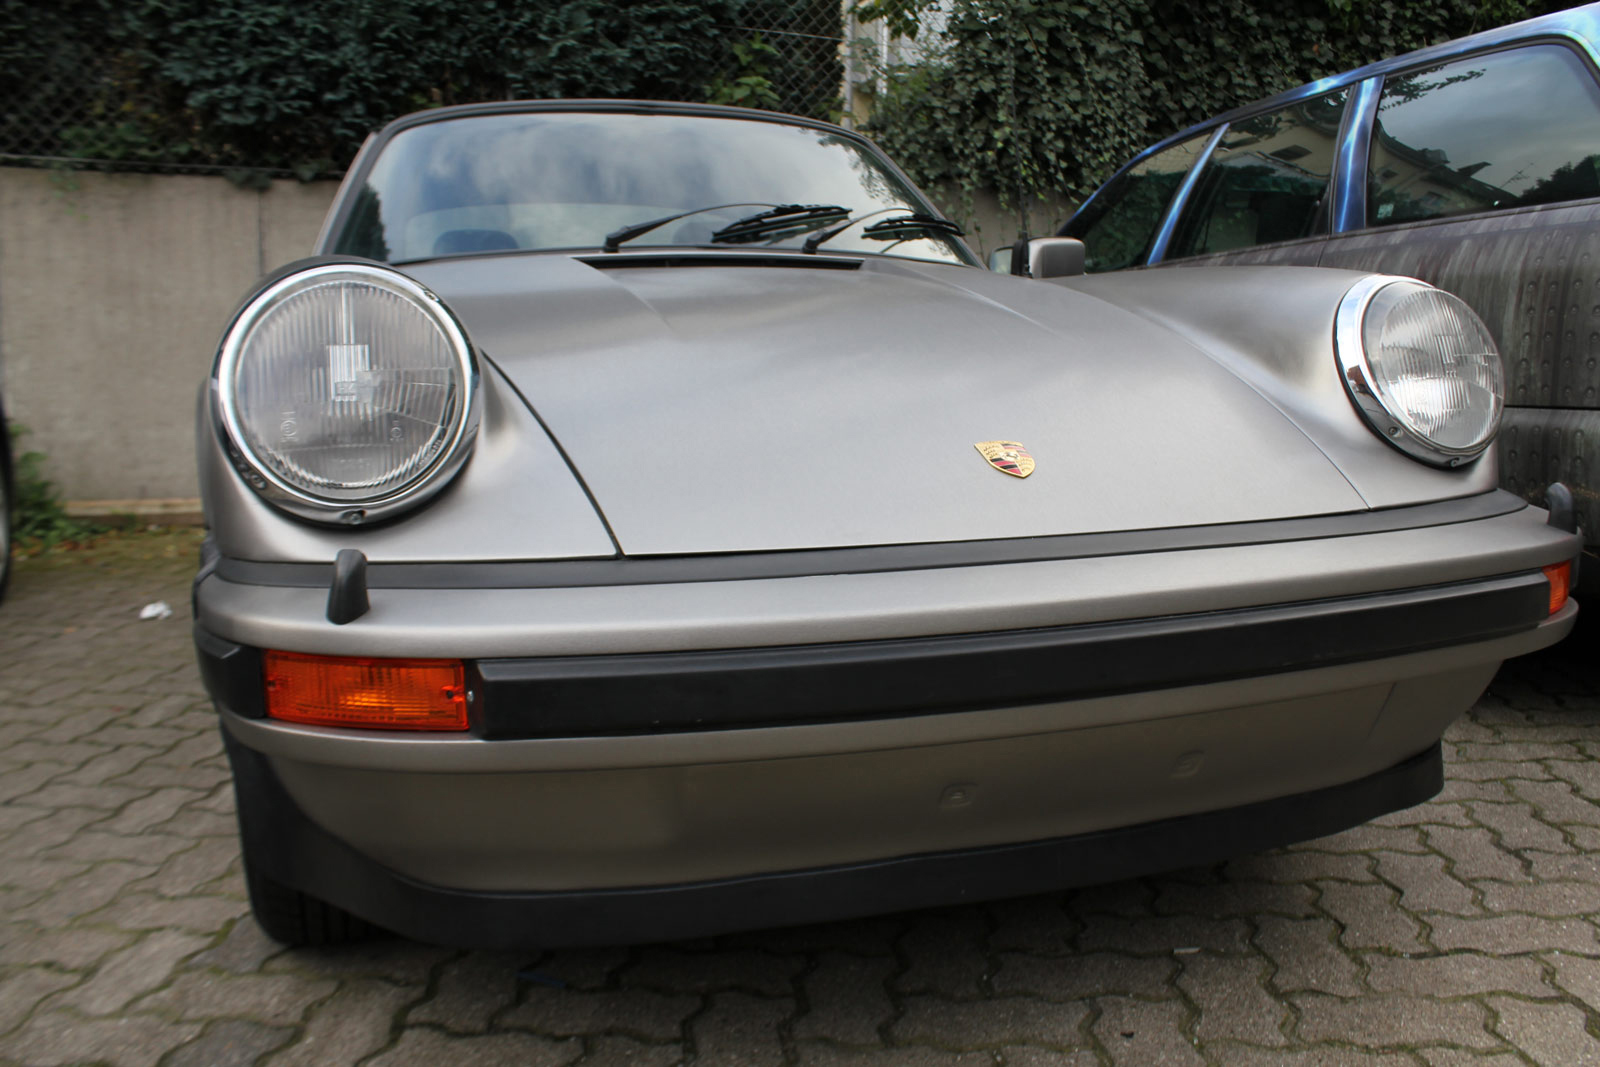 PORSCHE_911_FOLIERUNG_BRUSHED_STEEL_20